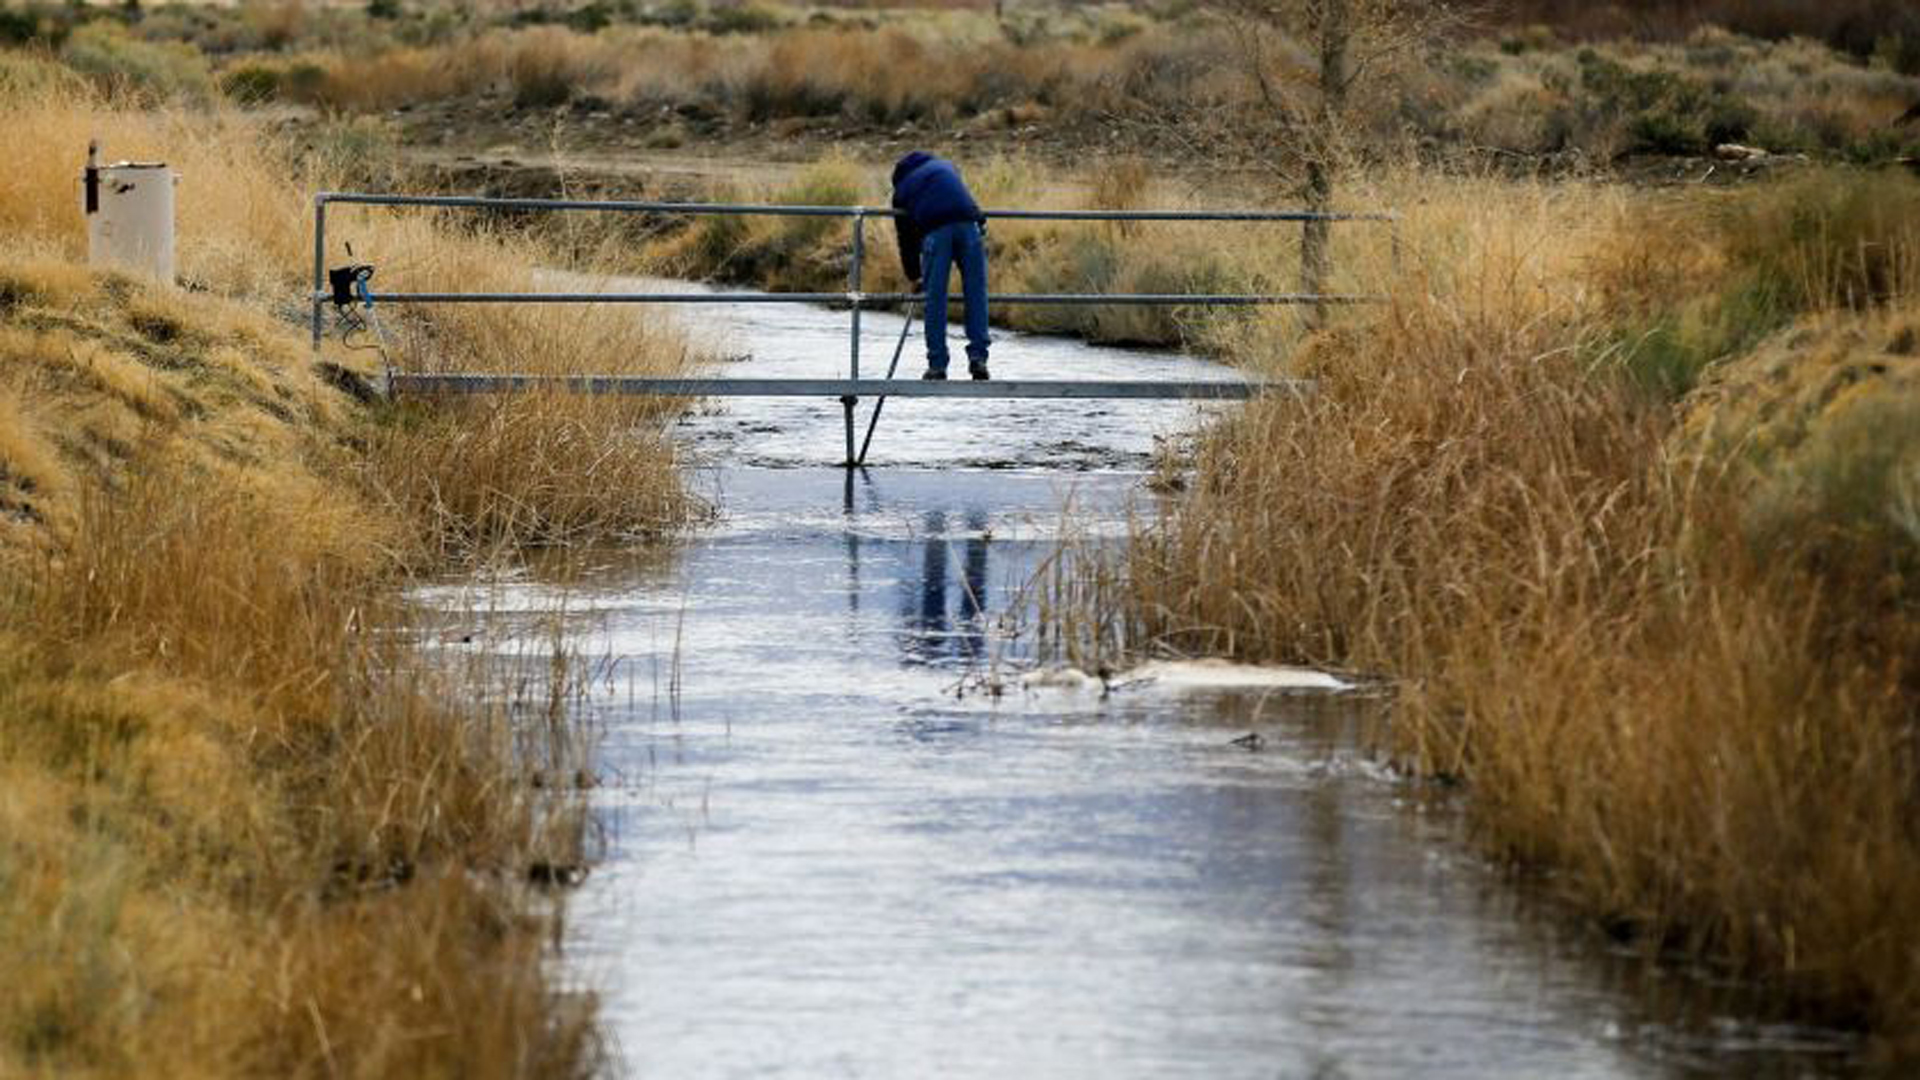 A government employee takes readings on a tributary of the Owens River near Bishop in 2017. (Credit: Mark Boster / Los Angeles Times)